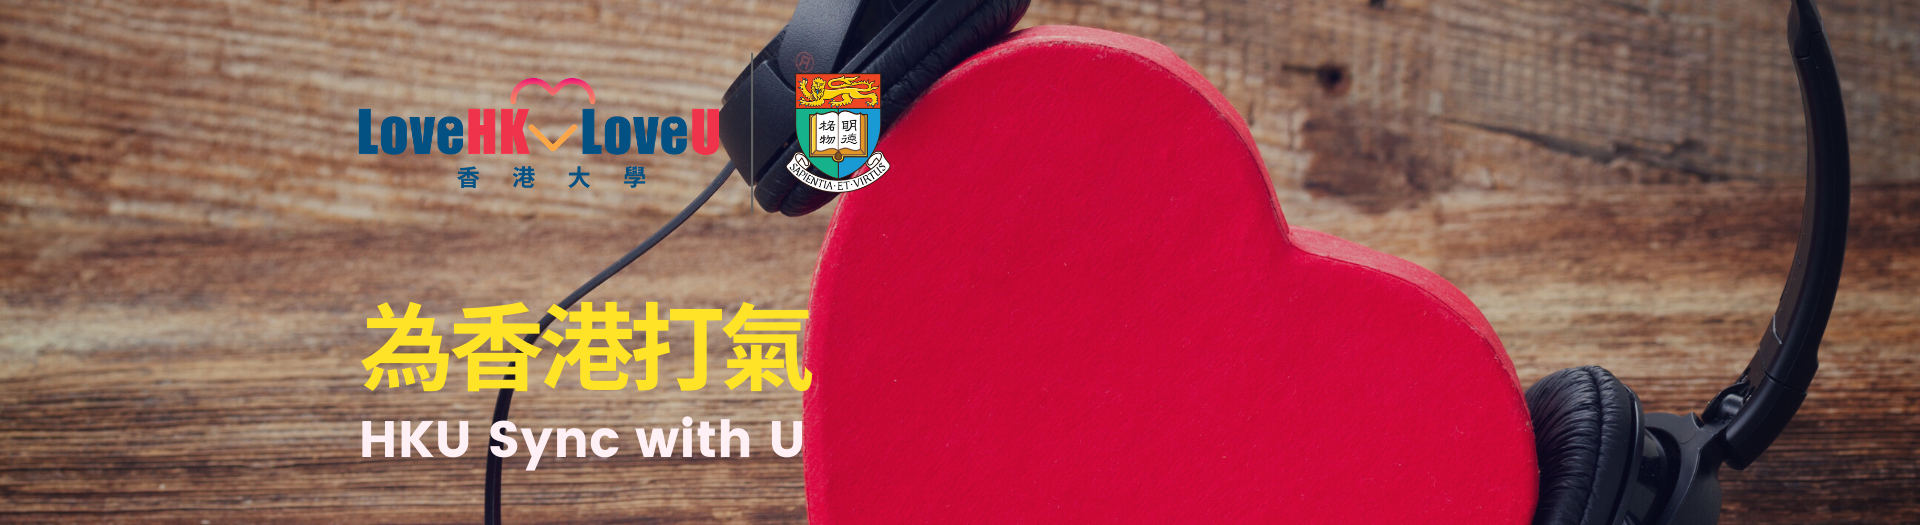 HKU Information Day on 4 Nov, 2017